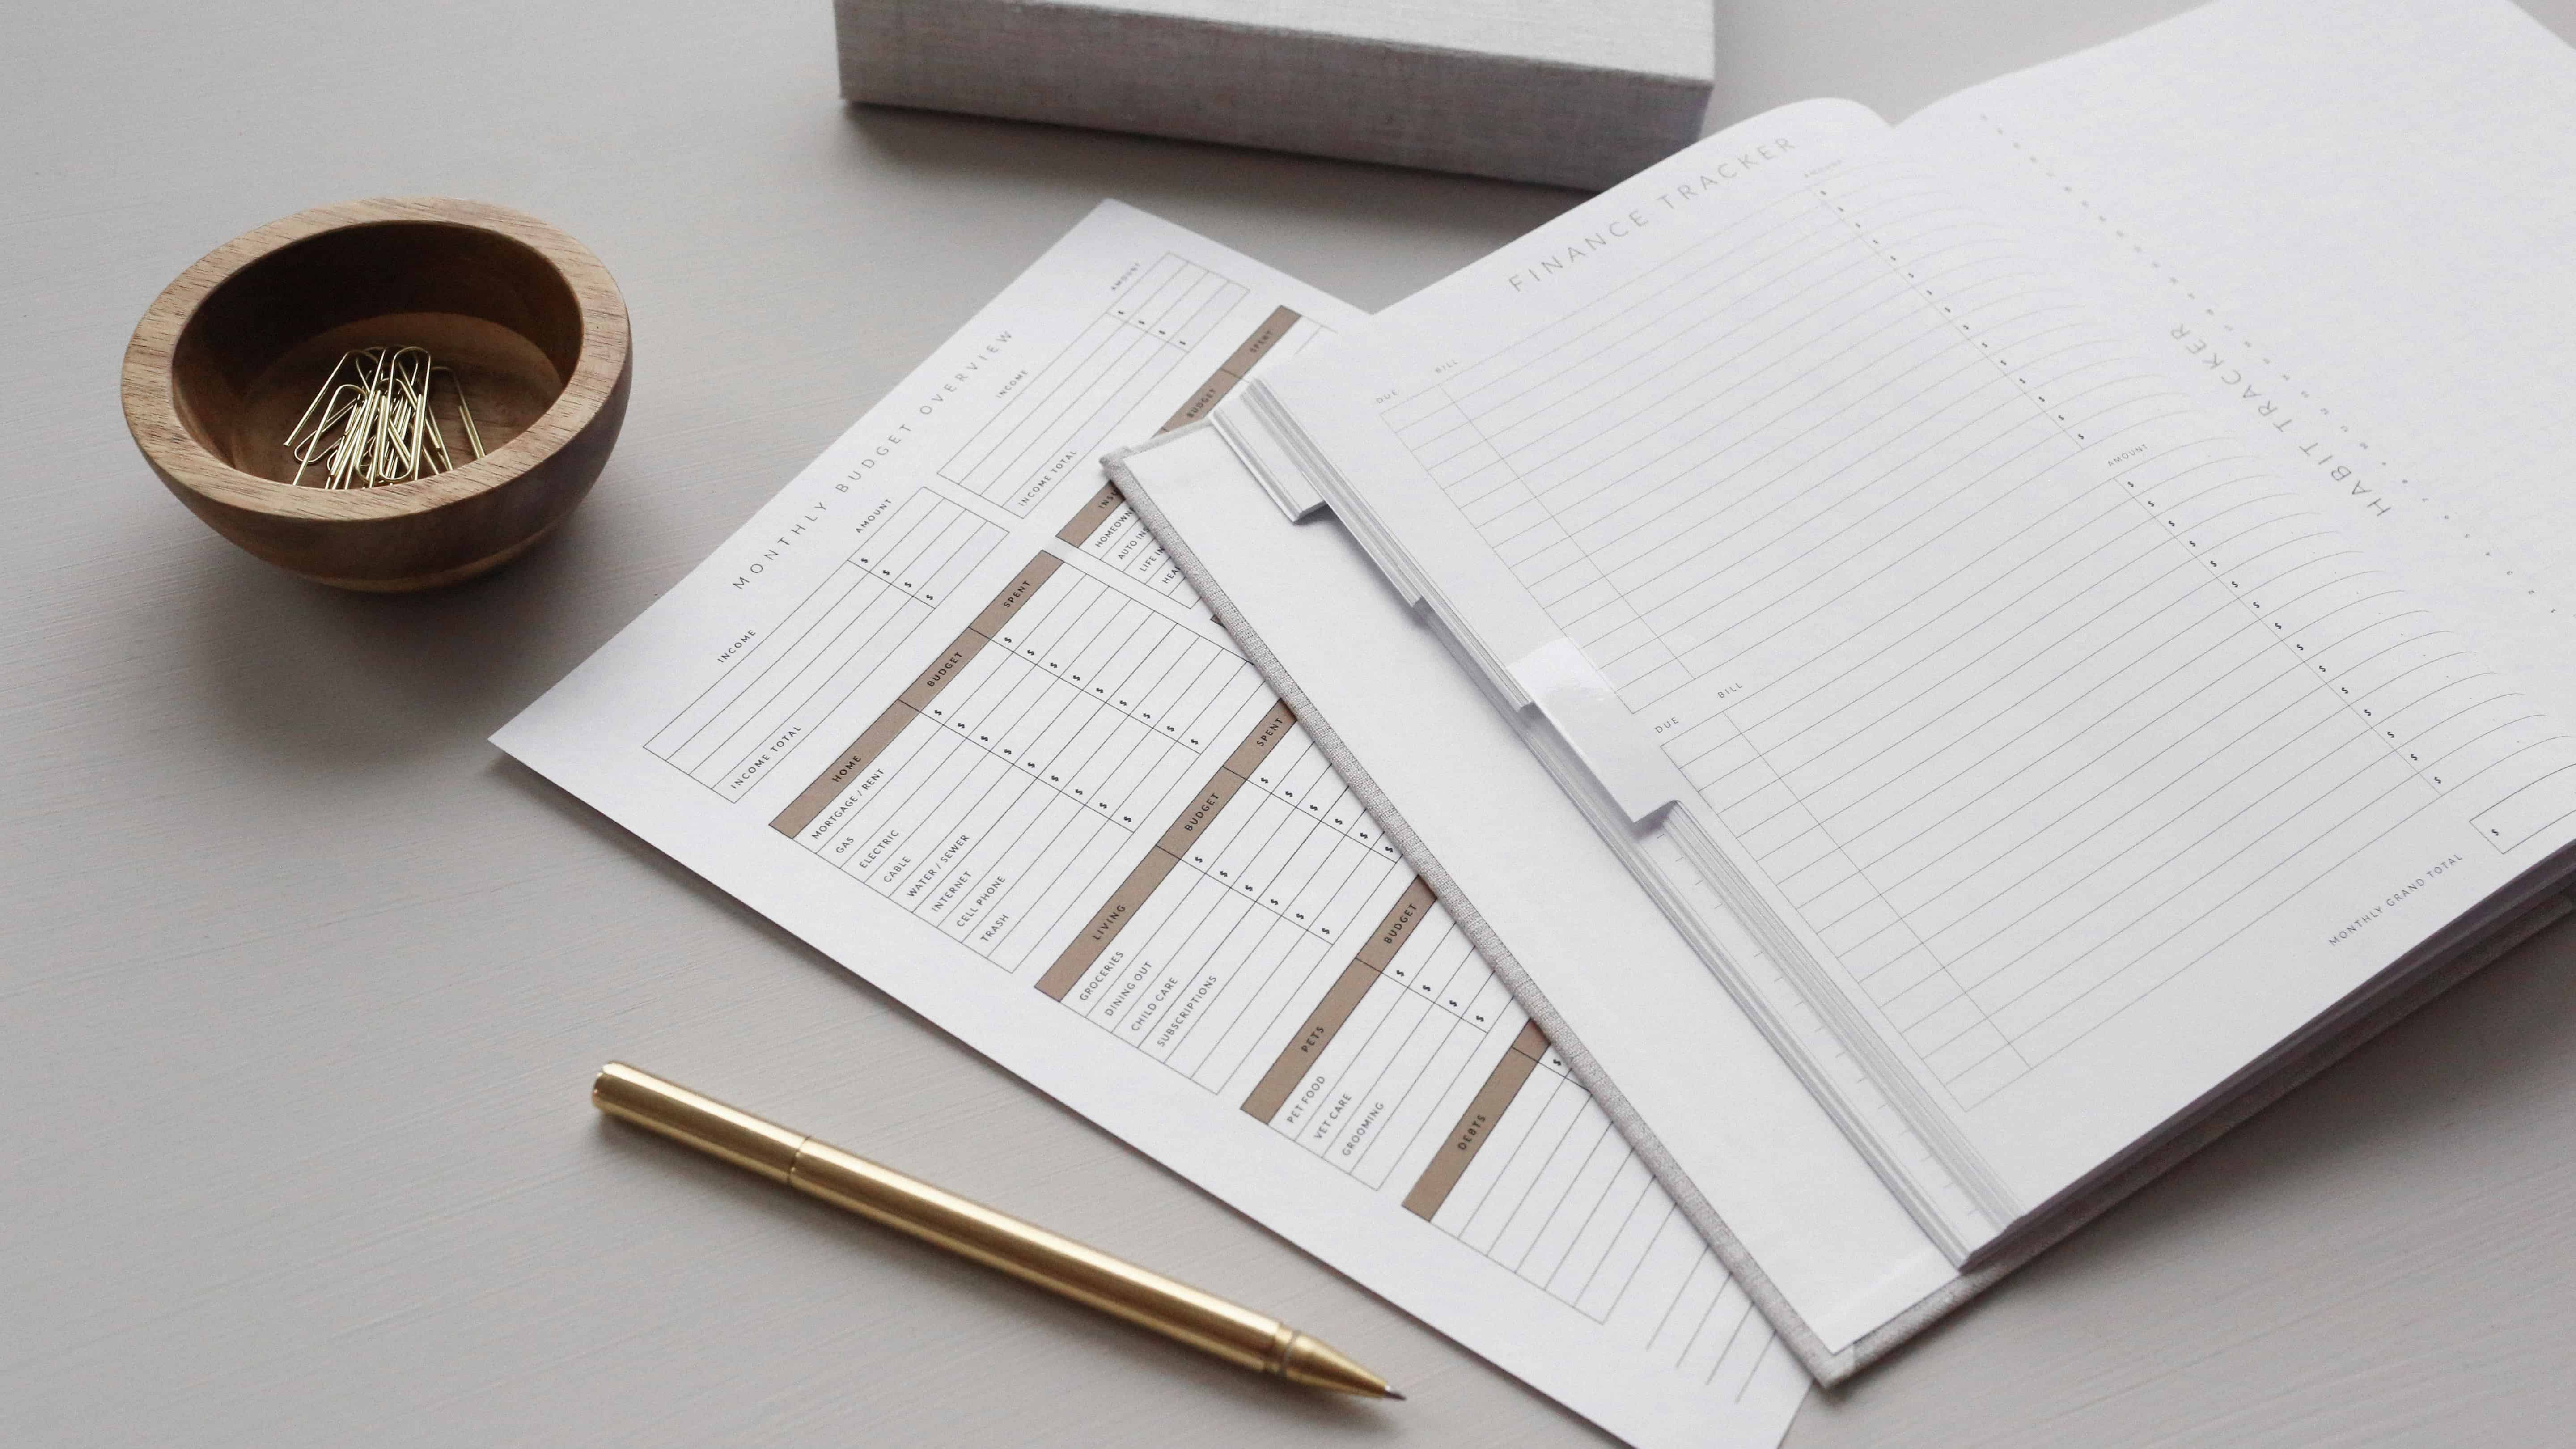 Notebook to turn your dreams into plans